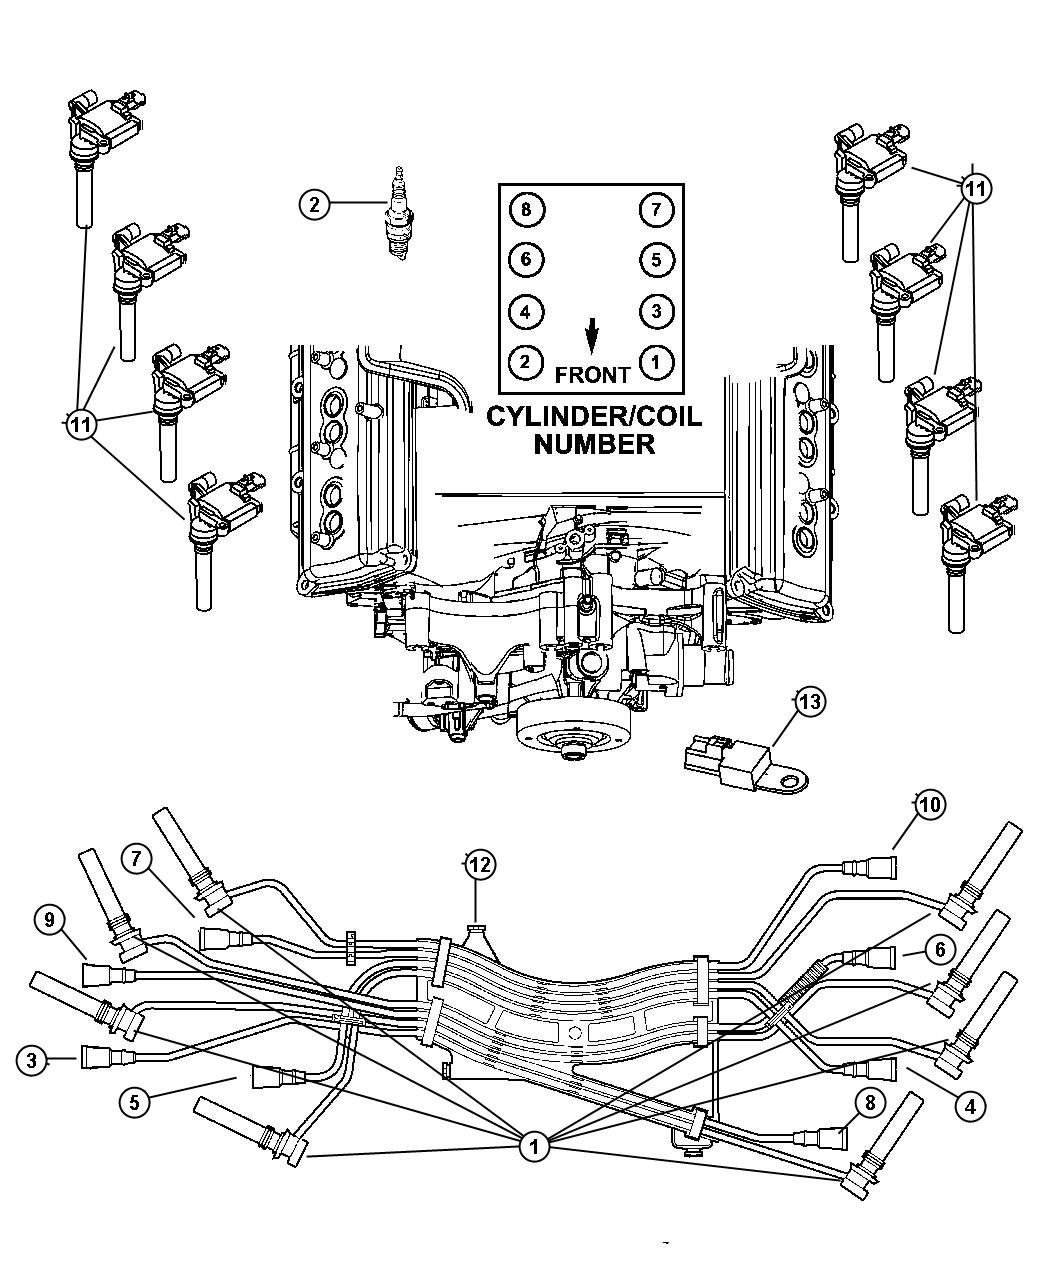 5 7 Hemi Engine Parts Schematic -1993 Ford Stereo Wiring Diagram | Begeboy Wiring  Diagram Source